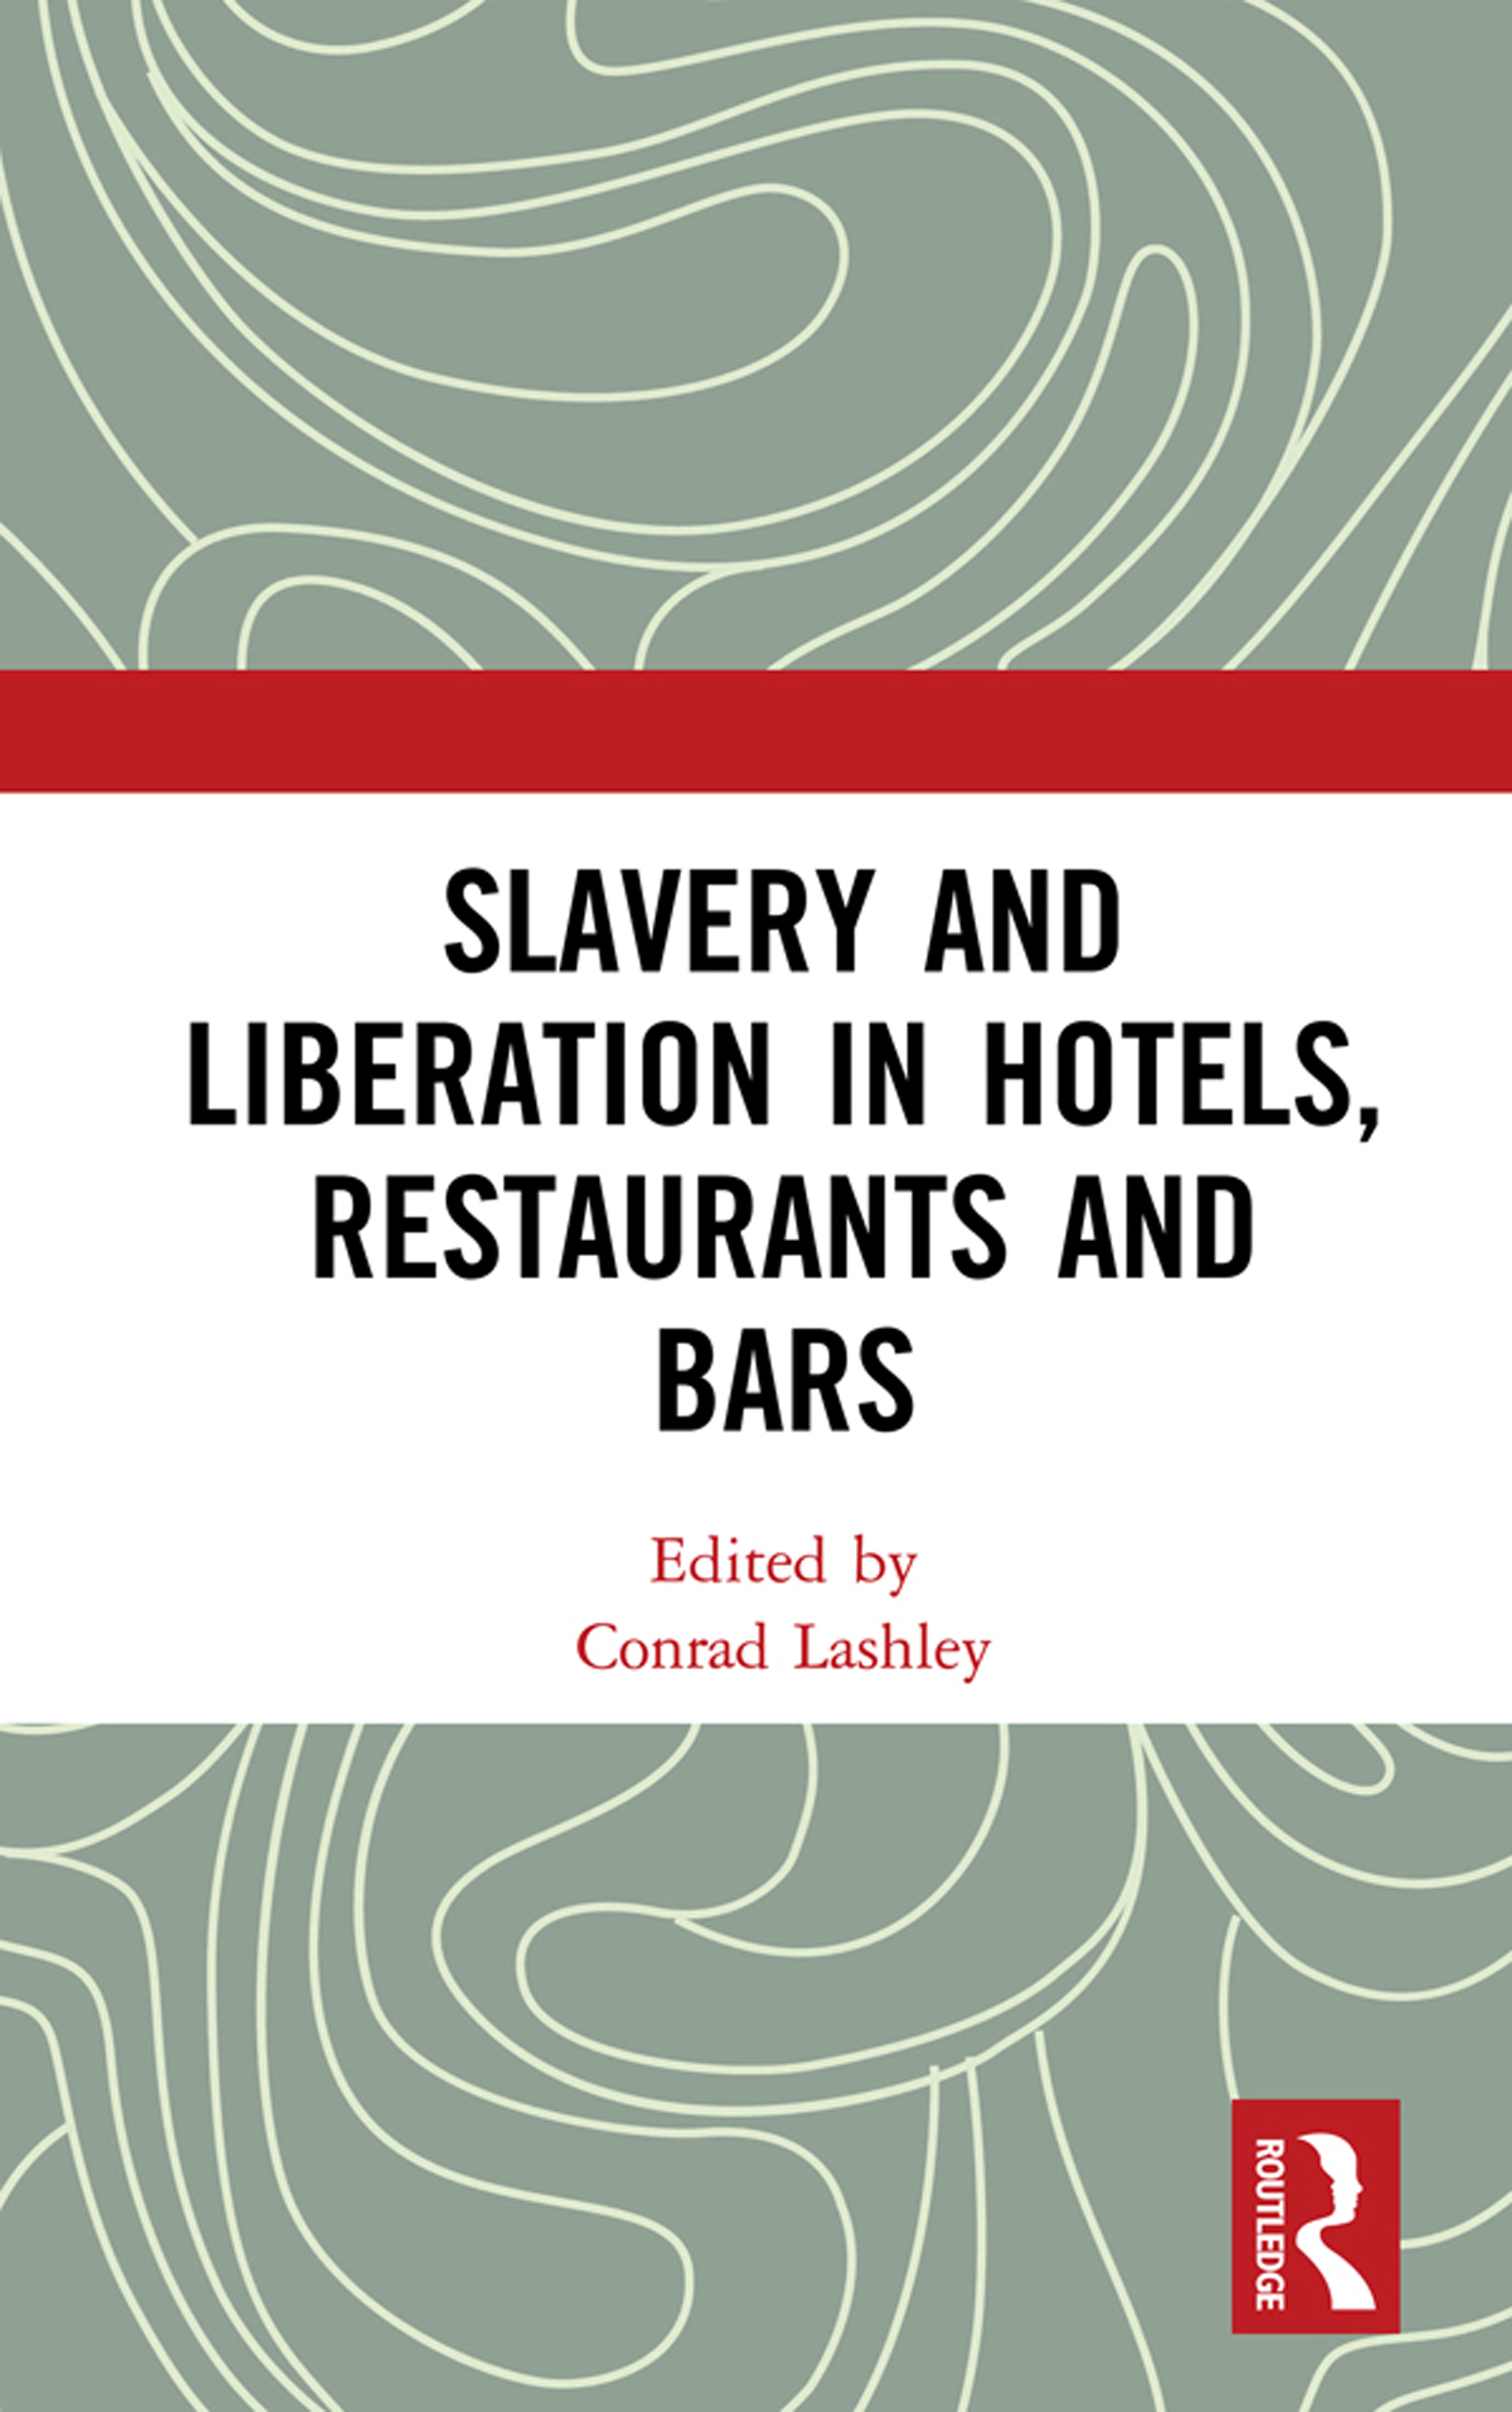 Slavery and Liberation in Hotels, Restaurants and Bars